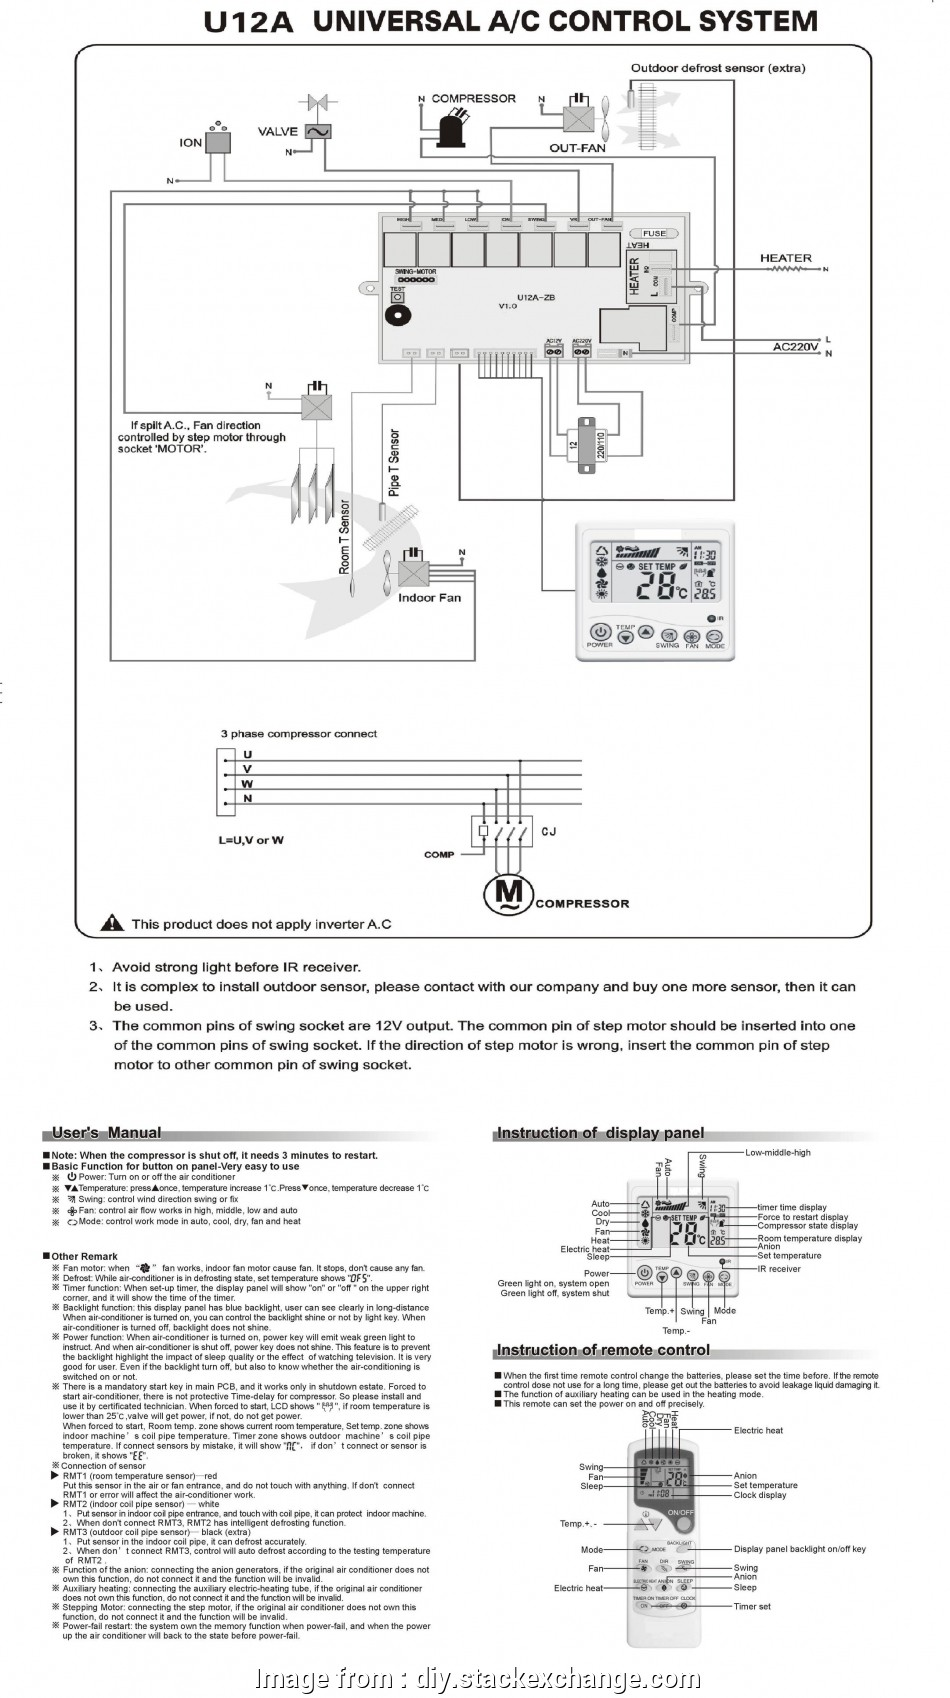 Imit Thermostat Wiring Diagram Perfect How To Change